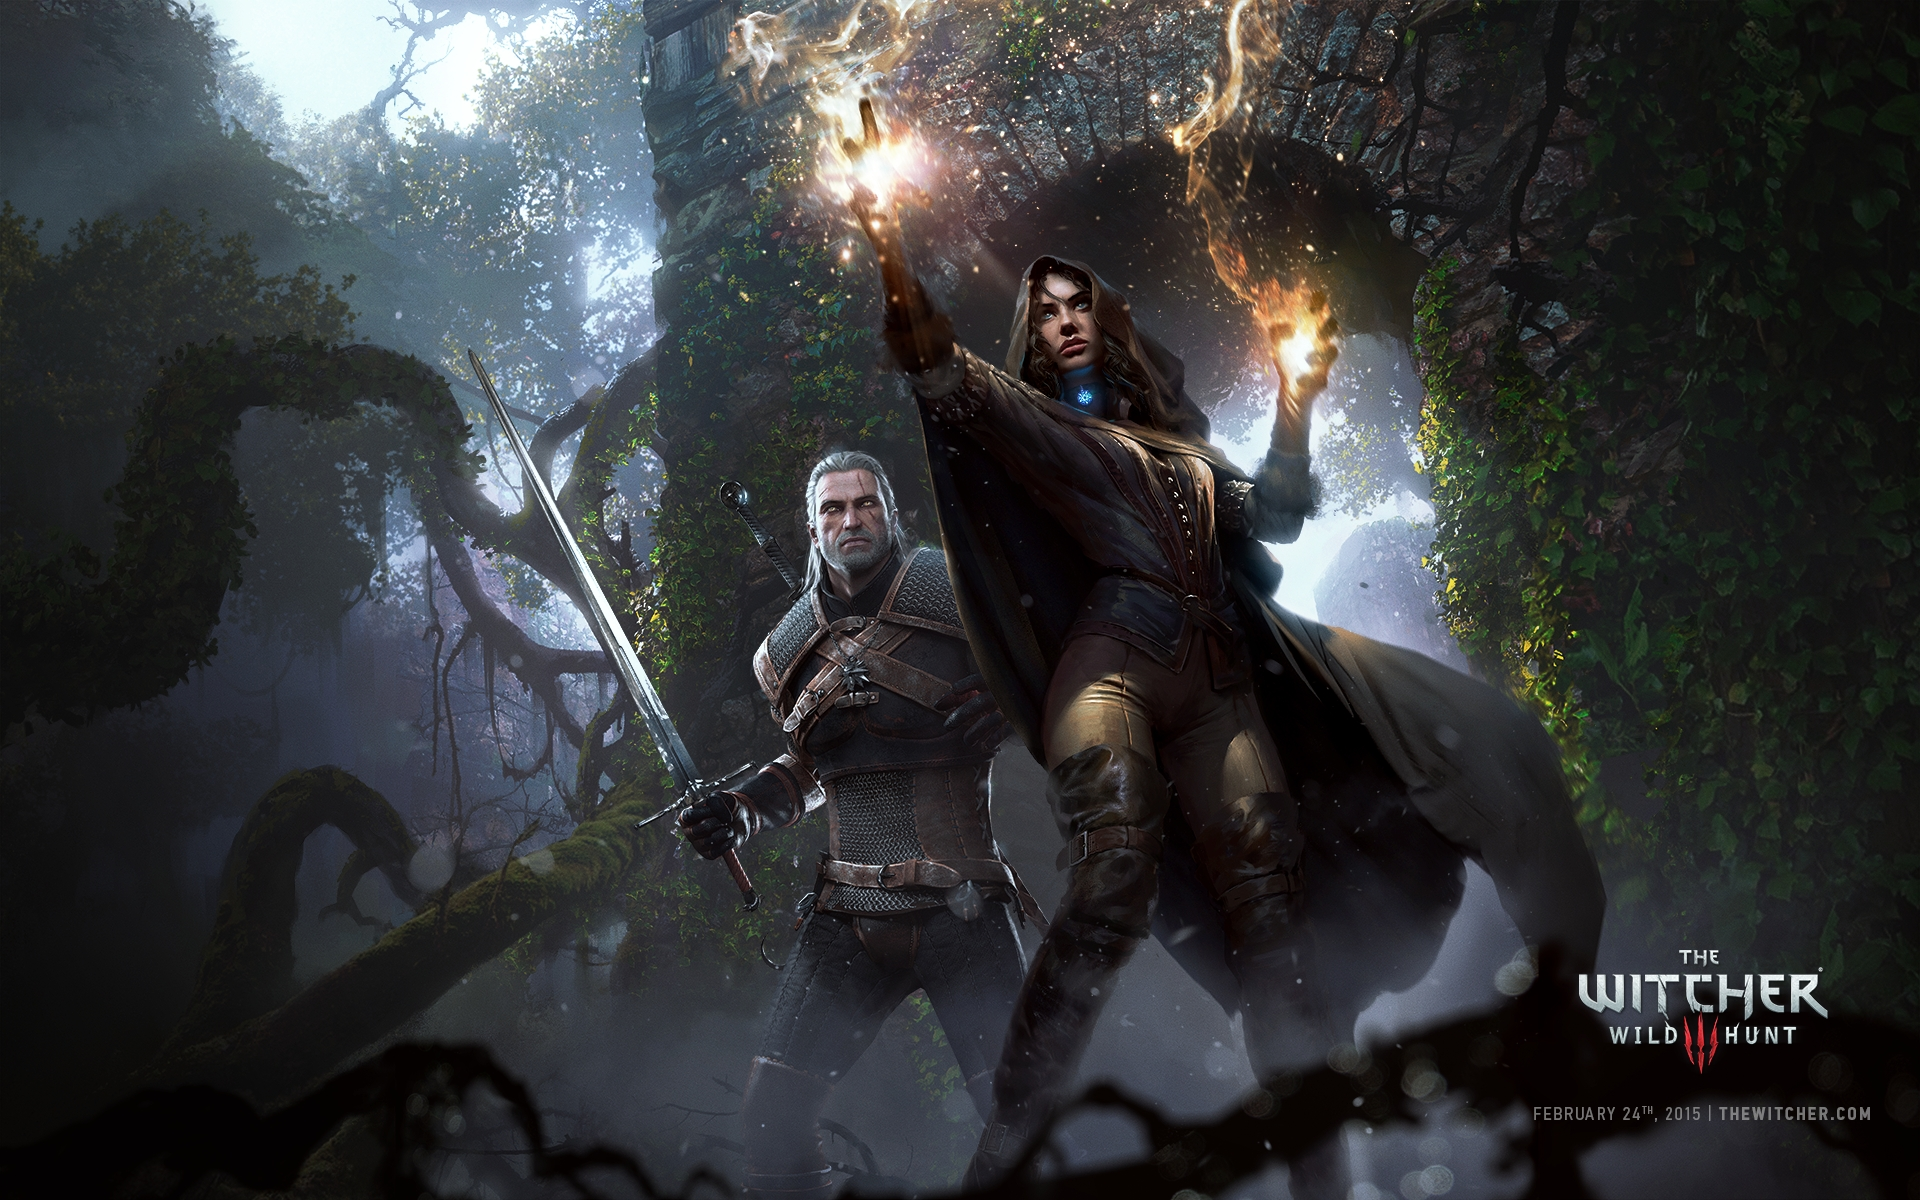 Free Download The Witcher 3 Wild Hunt Video Game 2015 Hd Wallpaper